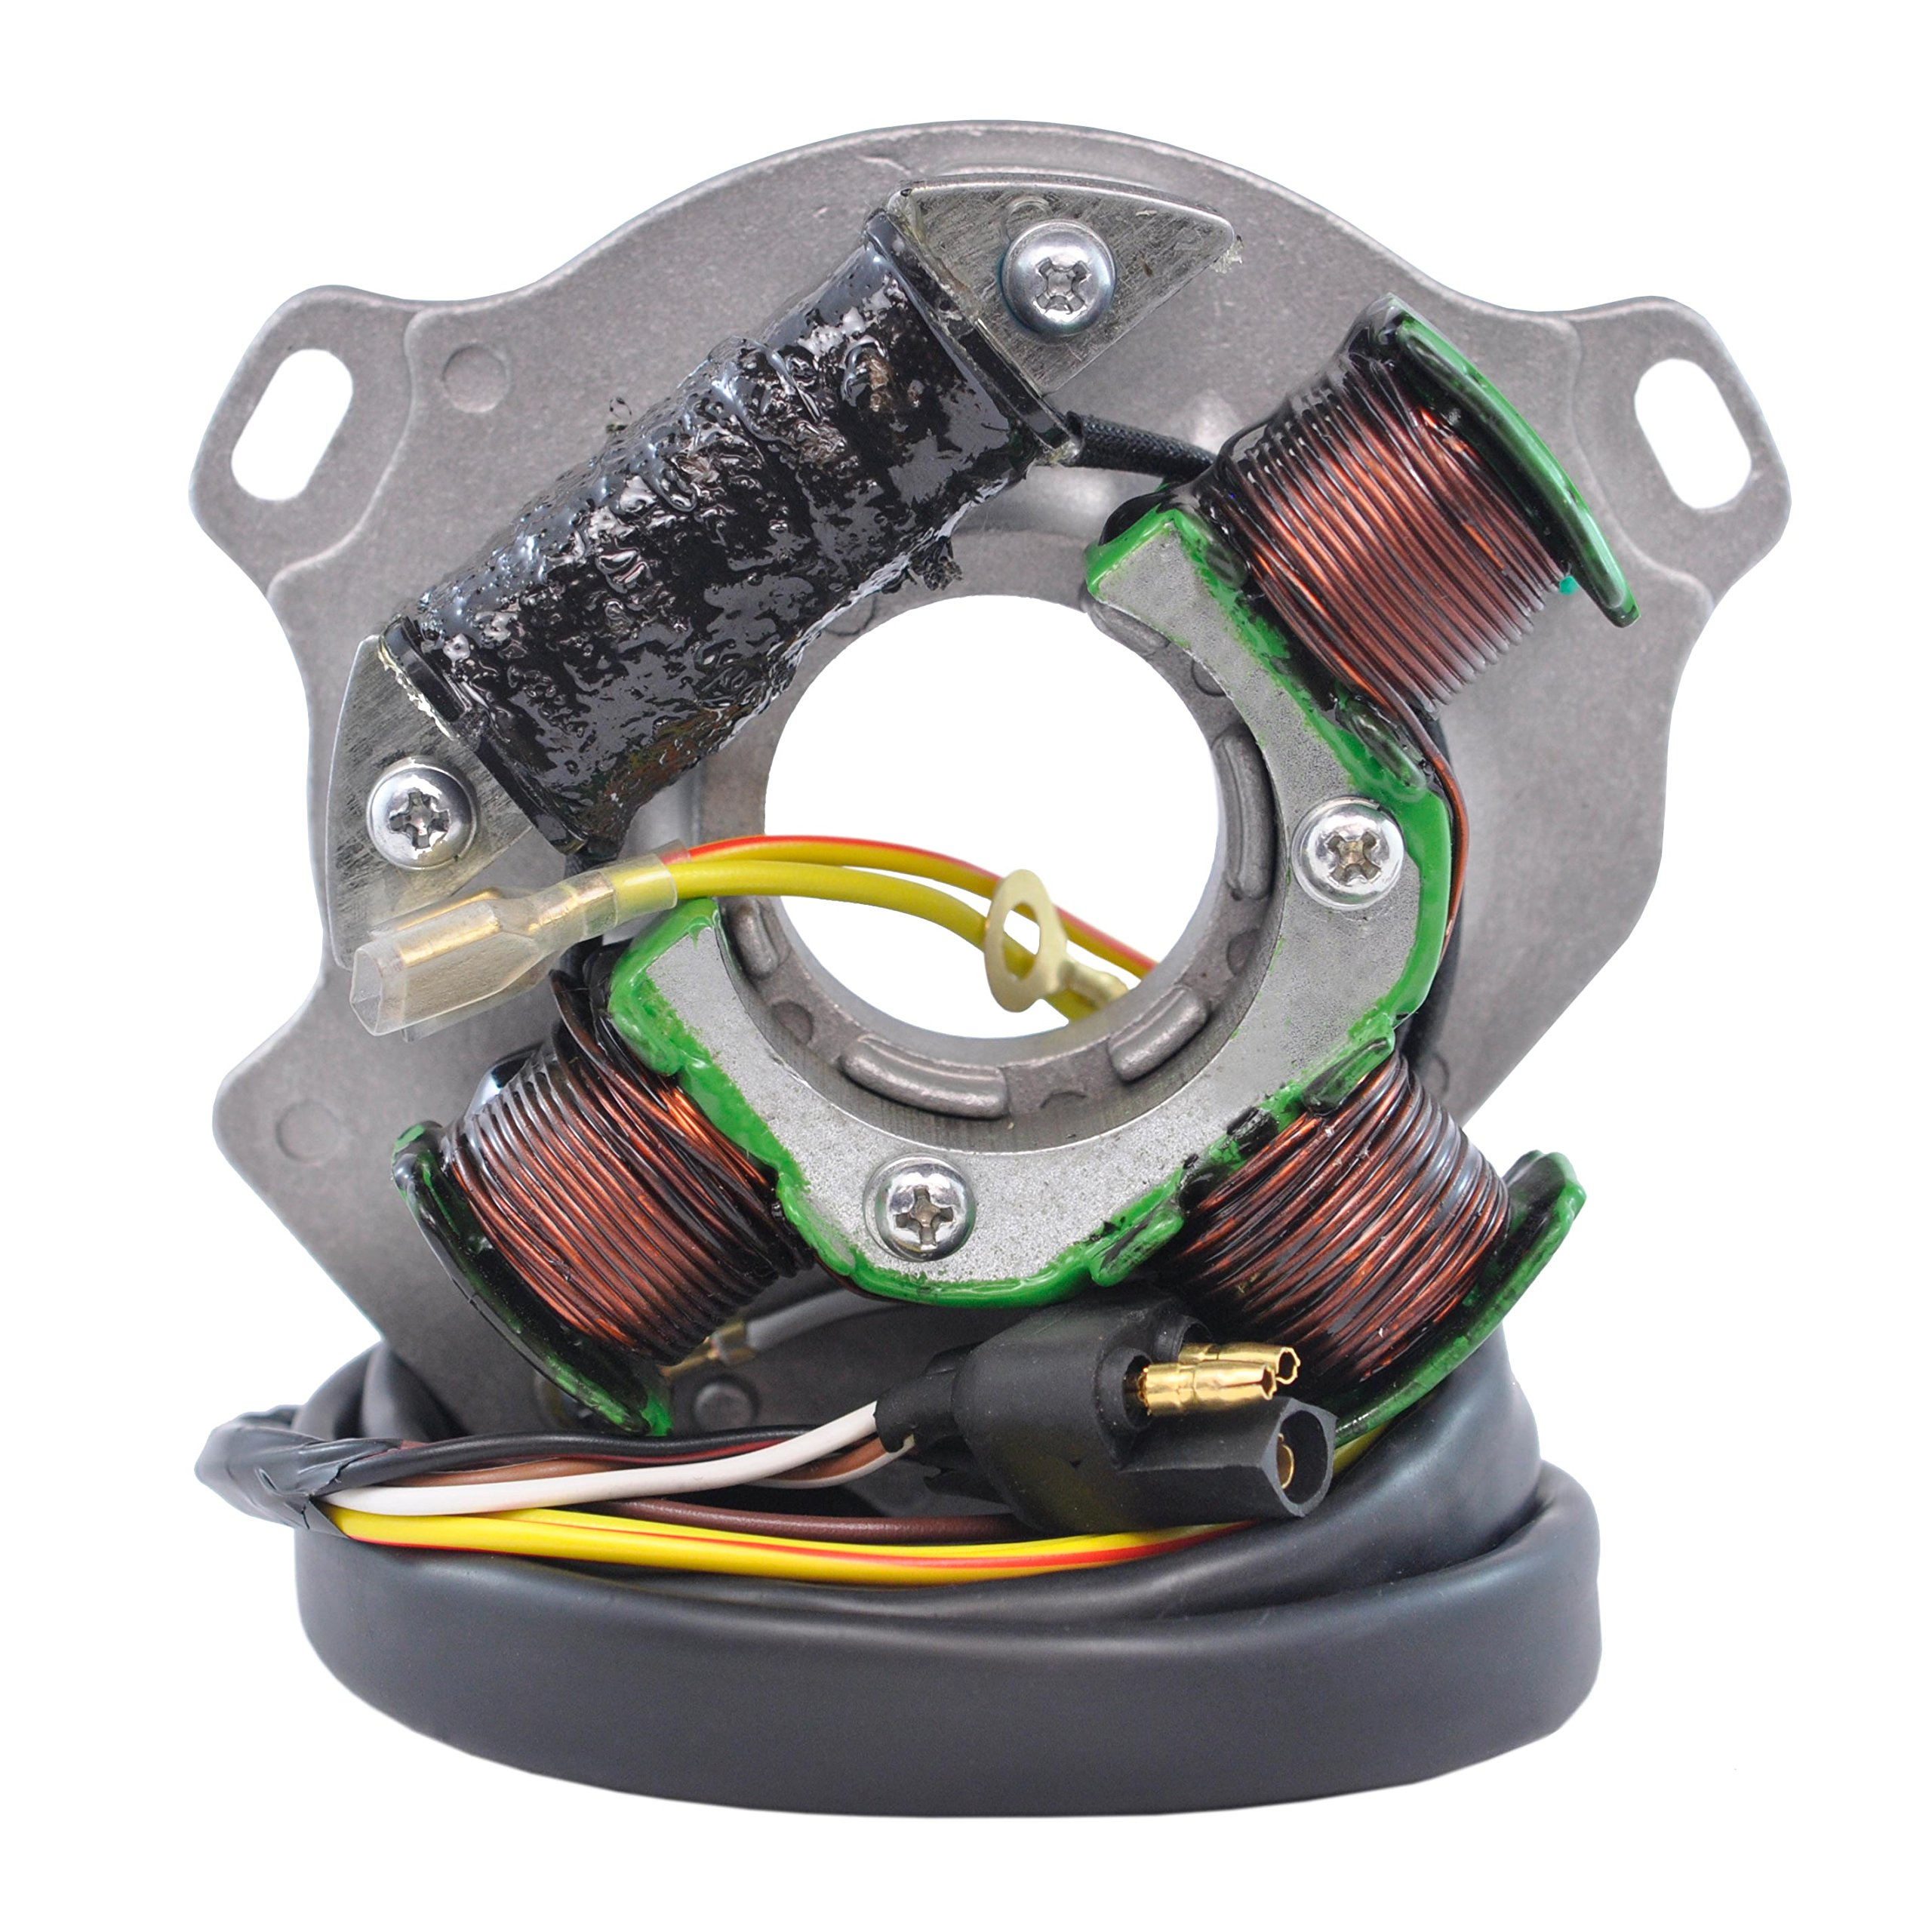 Stator For Polaris Scrambler 400 Sport 400 Sportsman 400 Trail Blazer 400 1994-2003 OEM Repl.# 3084785 3084788 by RMSTATOR